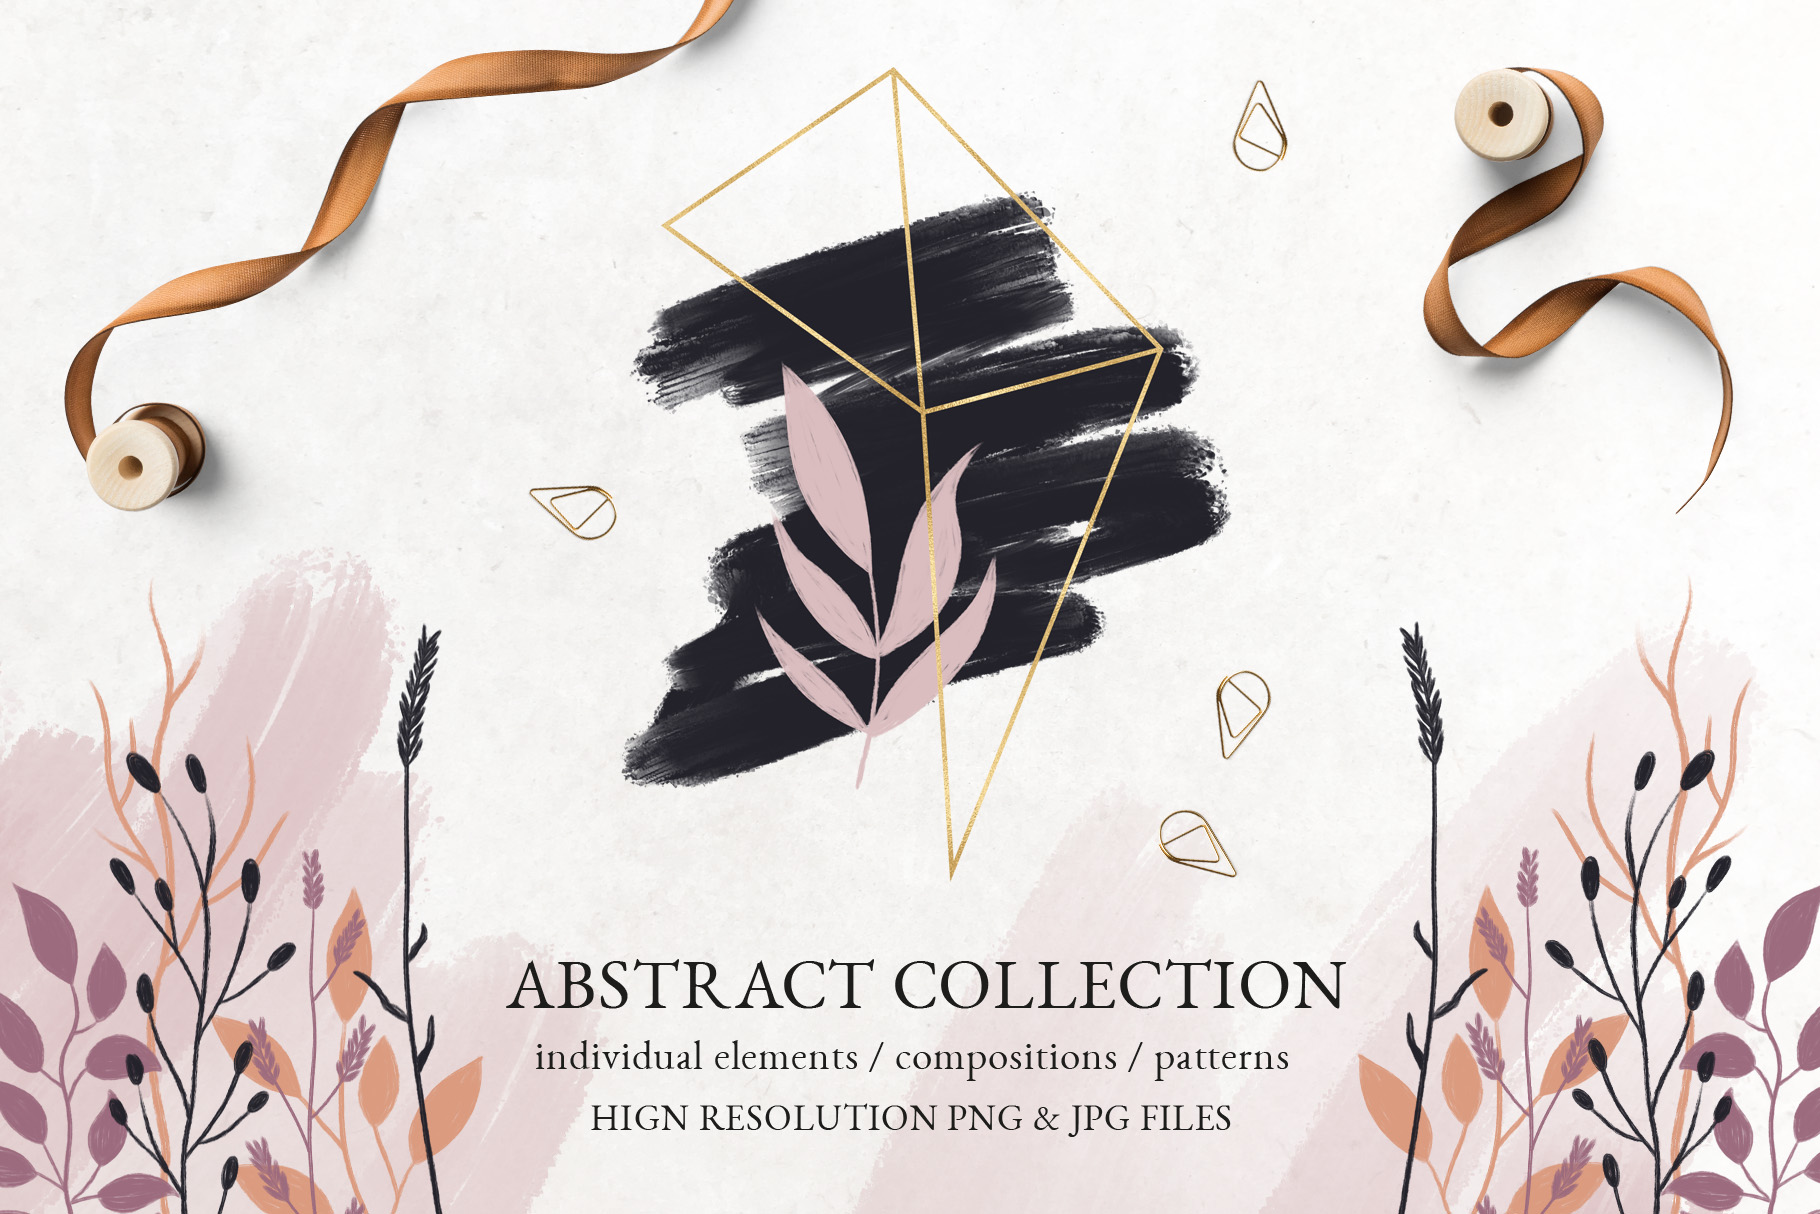 Abstract Collection